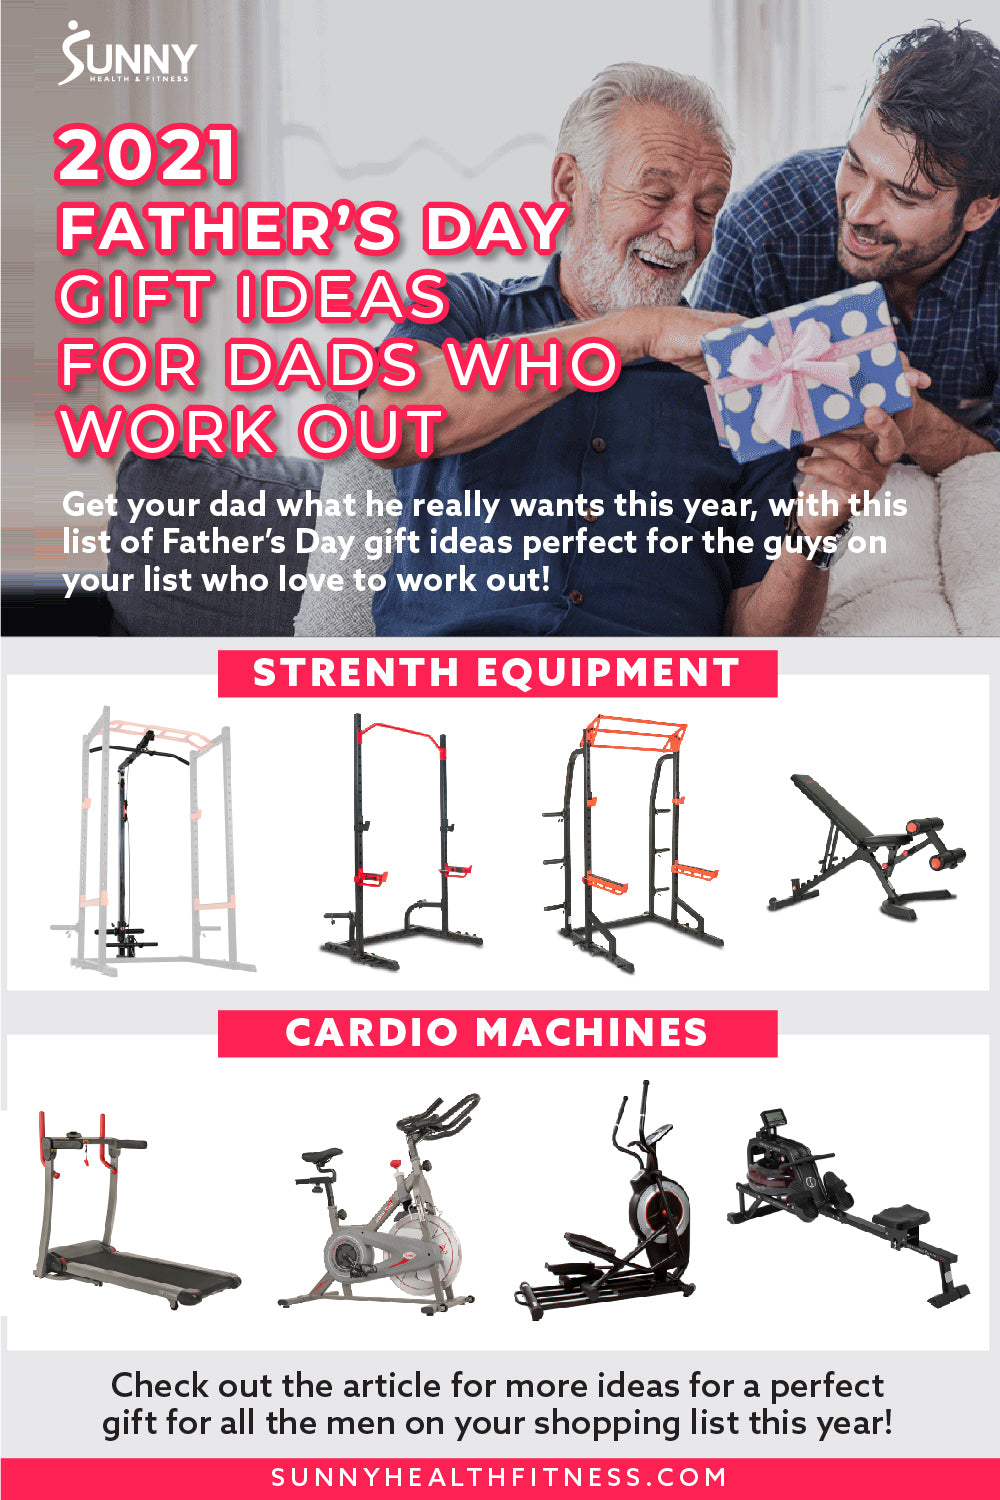 The Best Home Gym Cardio Machines and Strength Equipment for 2021 Father's Day Gifts.